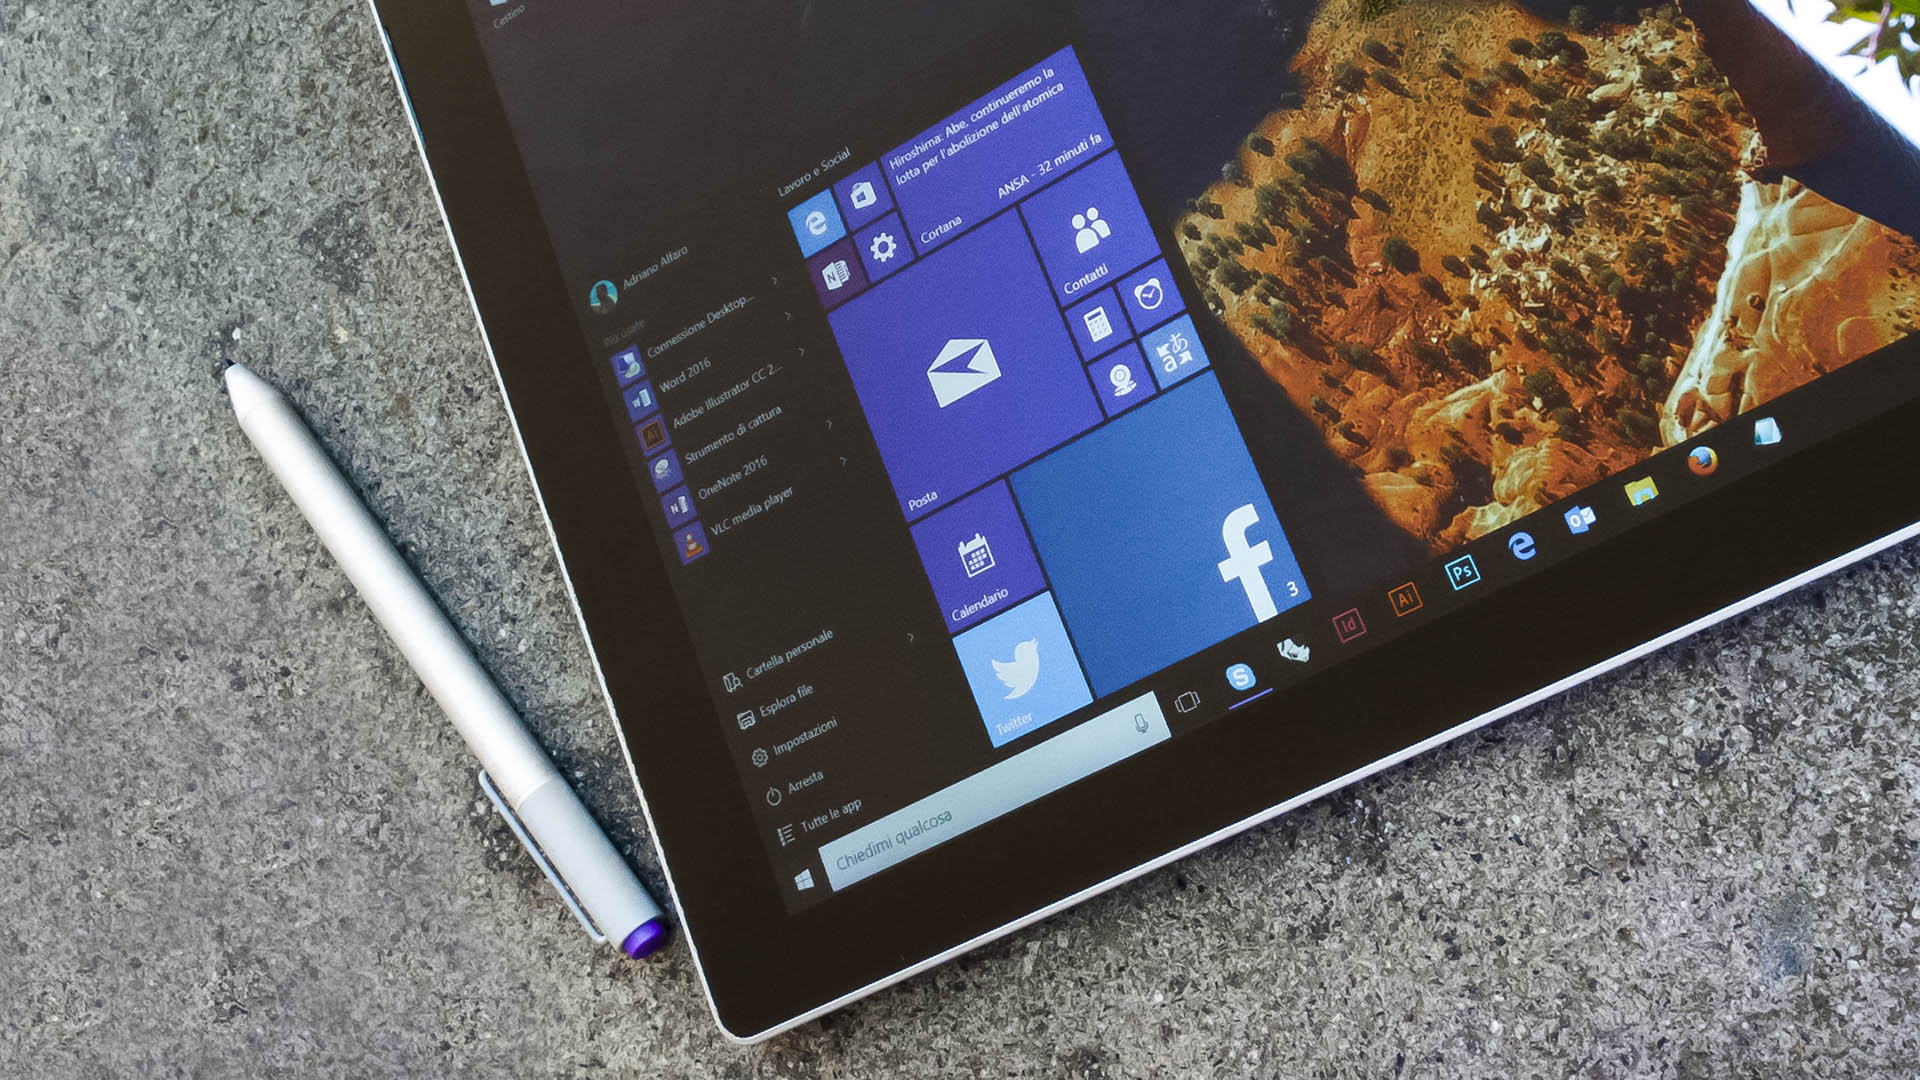 Windows 10 Start menu Surface Pro 3 penna